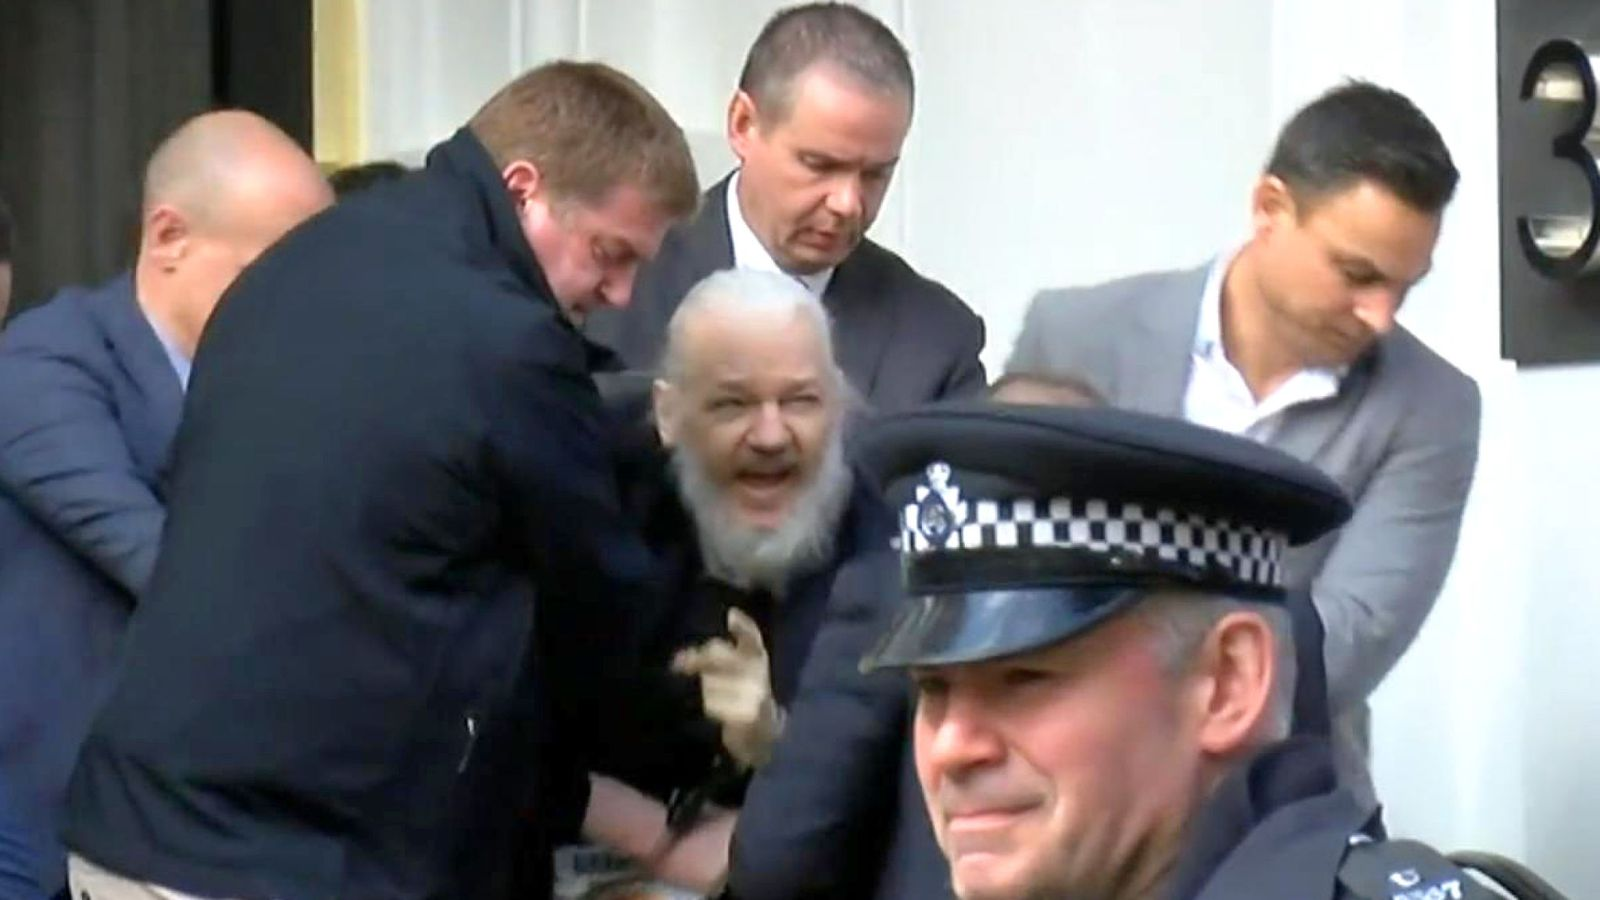 1554979786_616_wikileaks-founder-julian-assange-arrested-in-london-